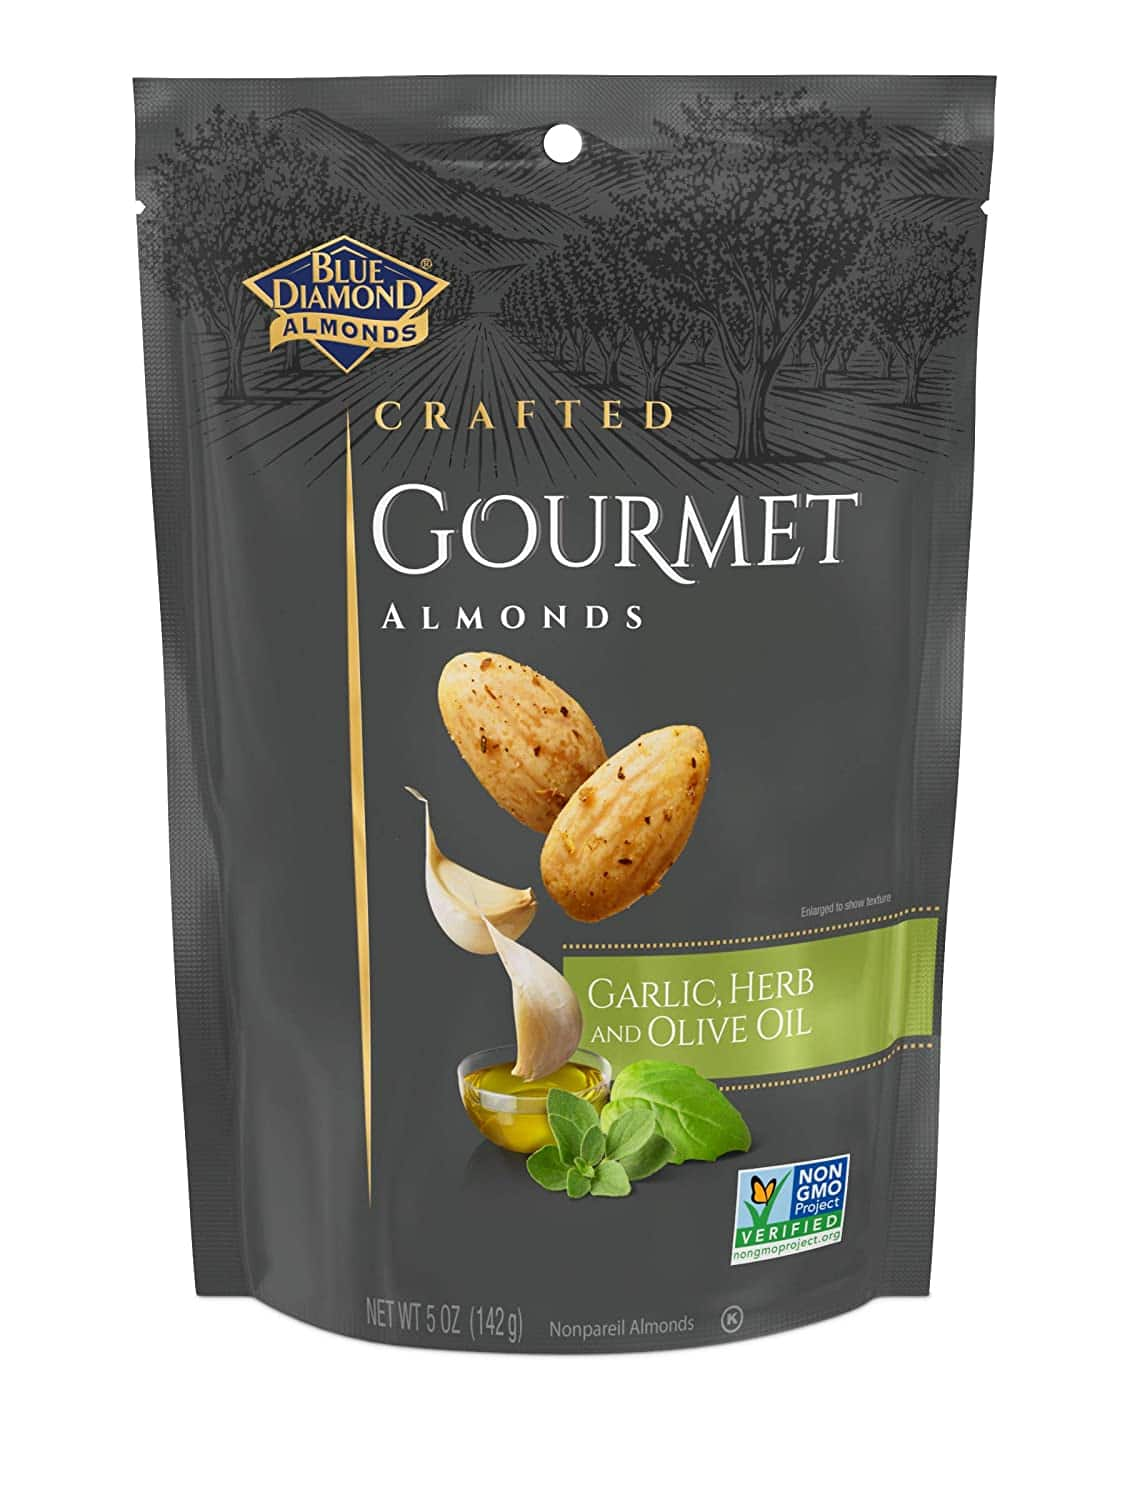 5-Oz Blue Diamond Gourmet Almonds (Garlic, Herb & Olive Oil) 2 for $4.50 & More w/ Subscribe & Save